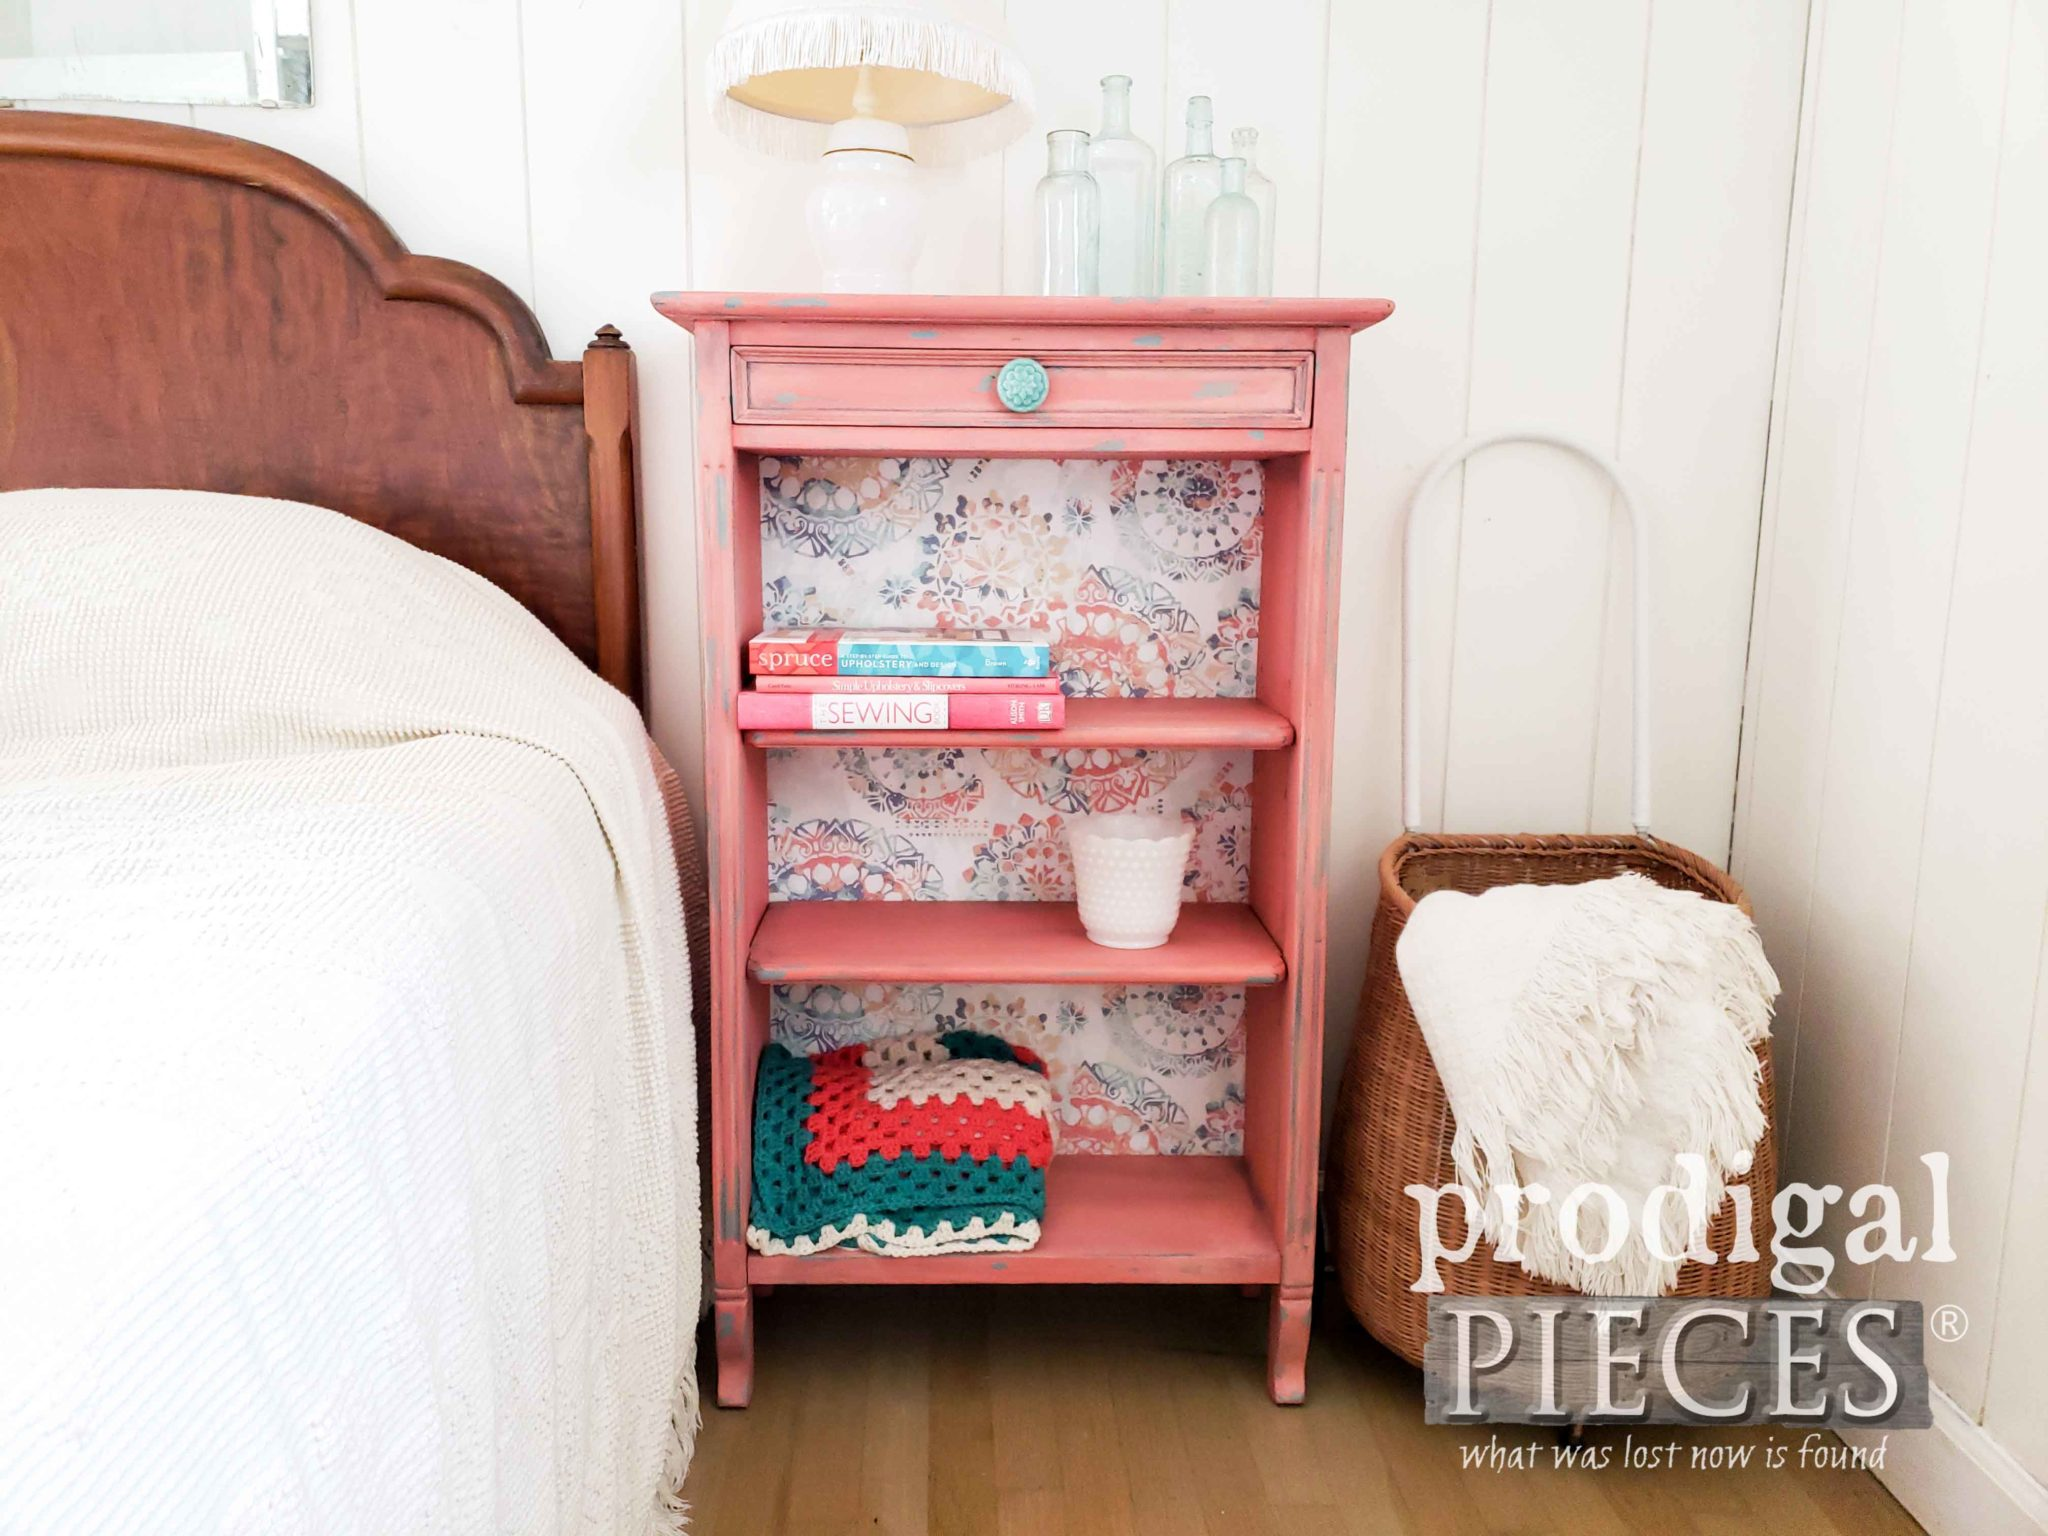 Vintage Coral Bookcase with Boho Vibe and Wallpaper Backing by Larissa of Prodigal Pieces | prodigalpieces.com #prodigalpieces